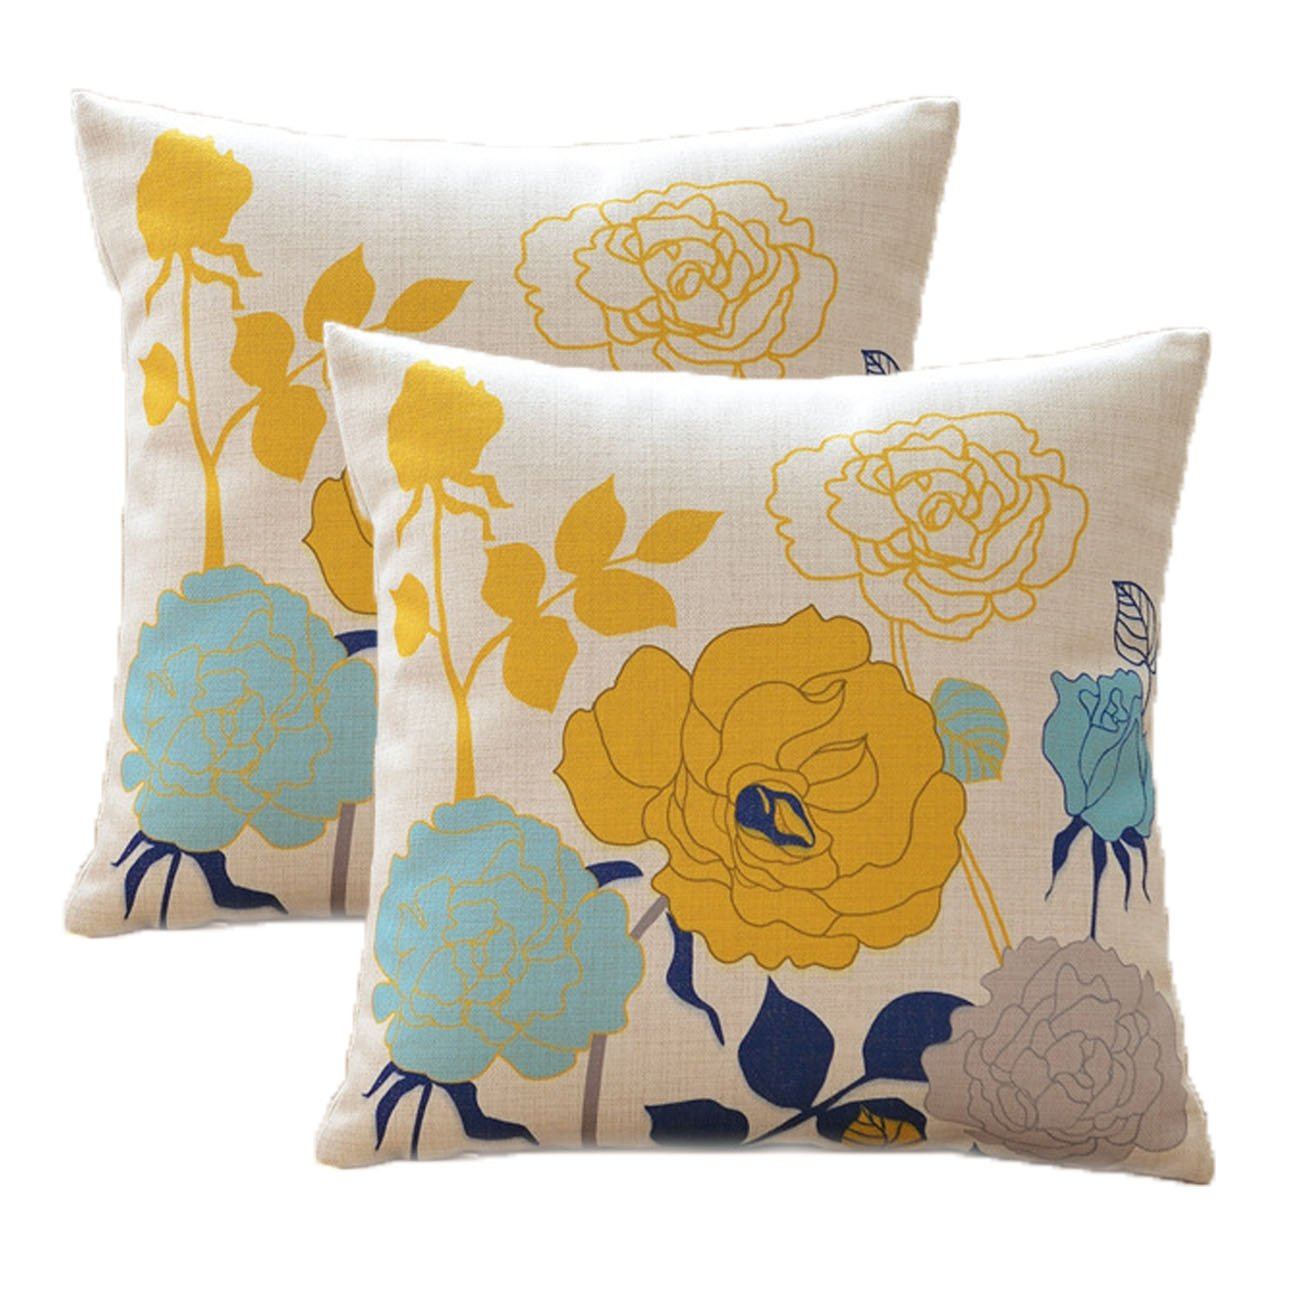 sykting Fall Pillow Covers Farmhouse 18 x 18 inch Pack of 2 Square Pillow Covers for Fall Decorations